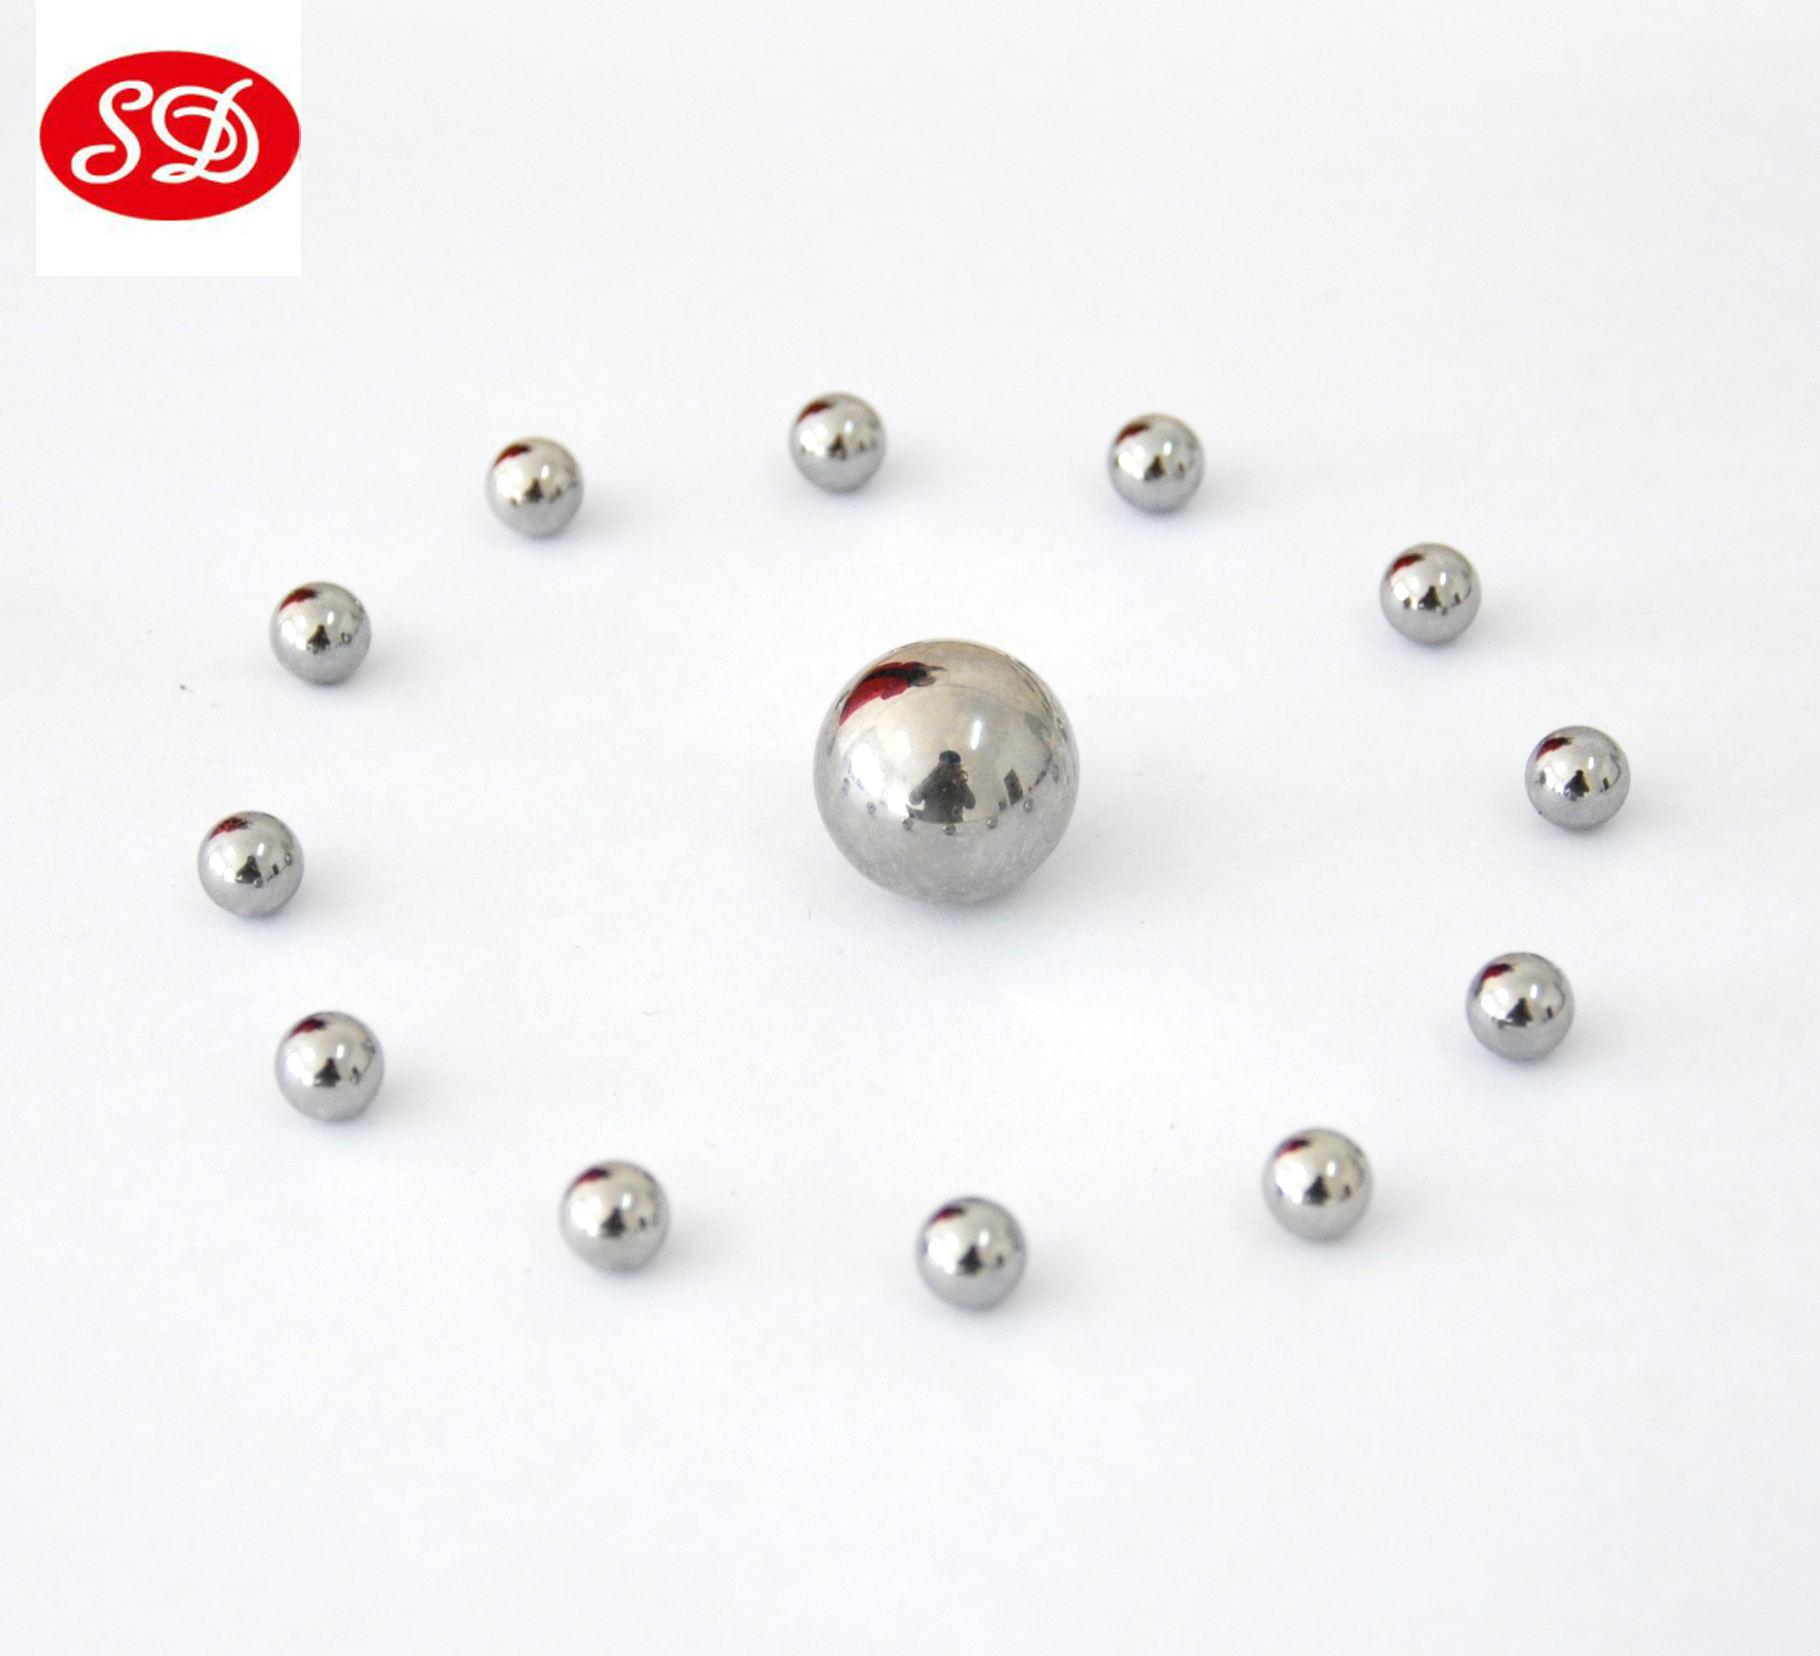 Wholesale bright surface carbon steel balls 7mm 8mm 9mm